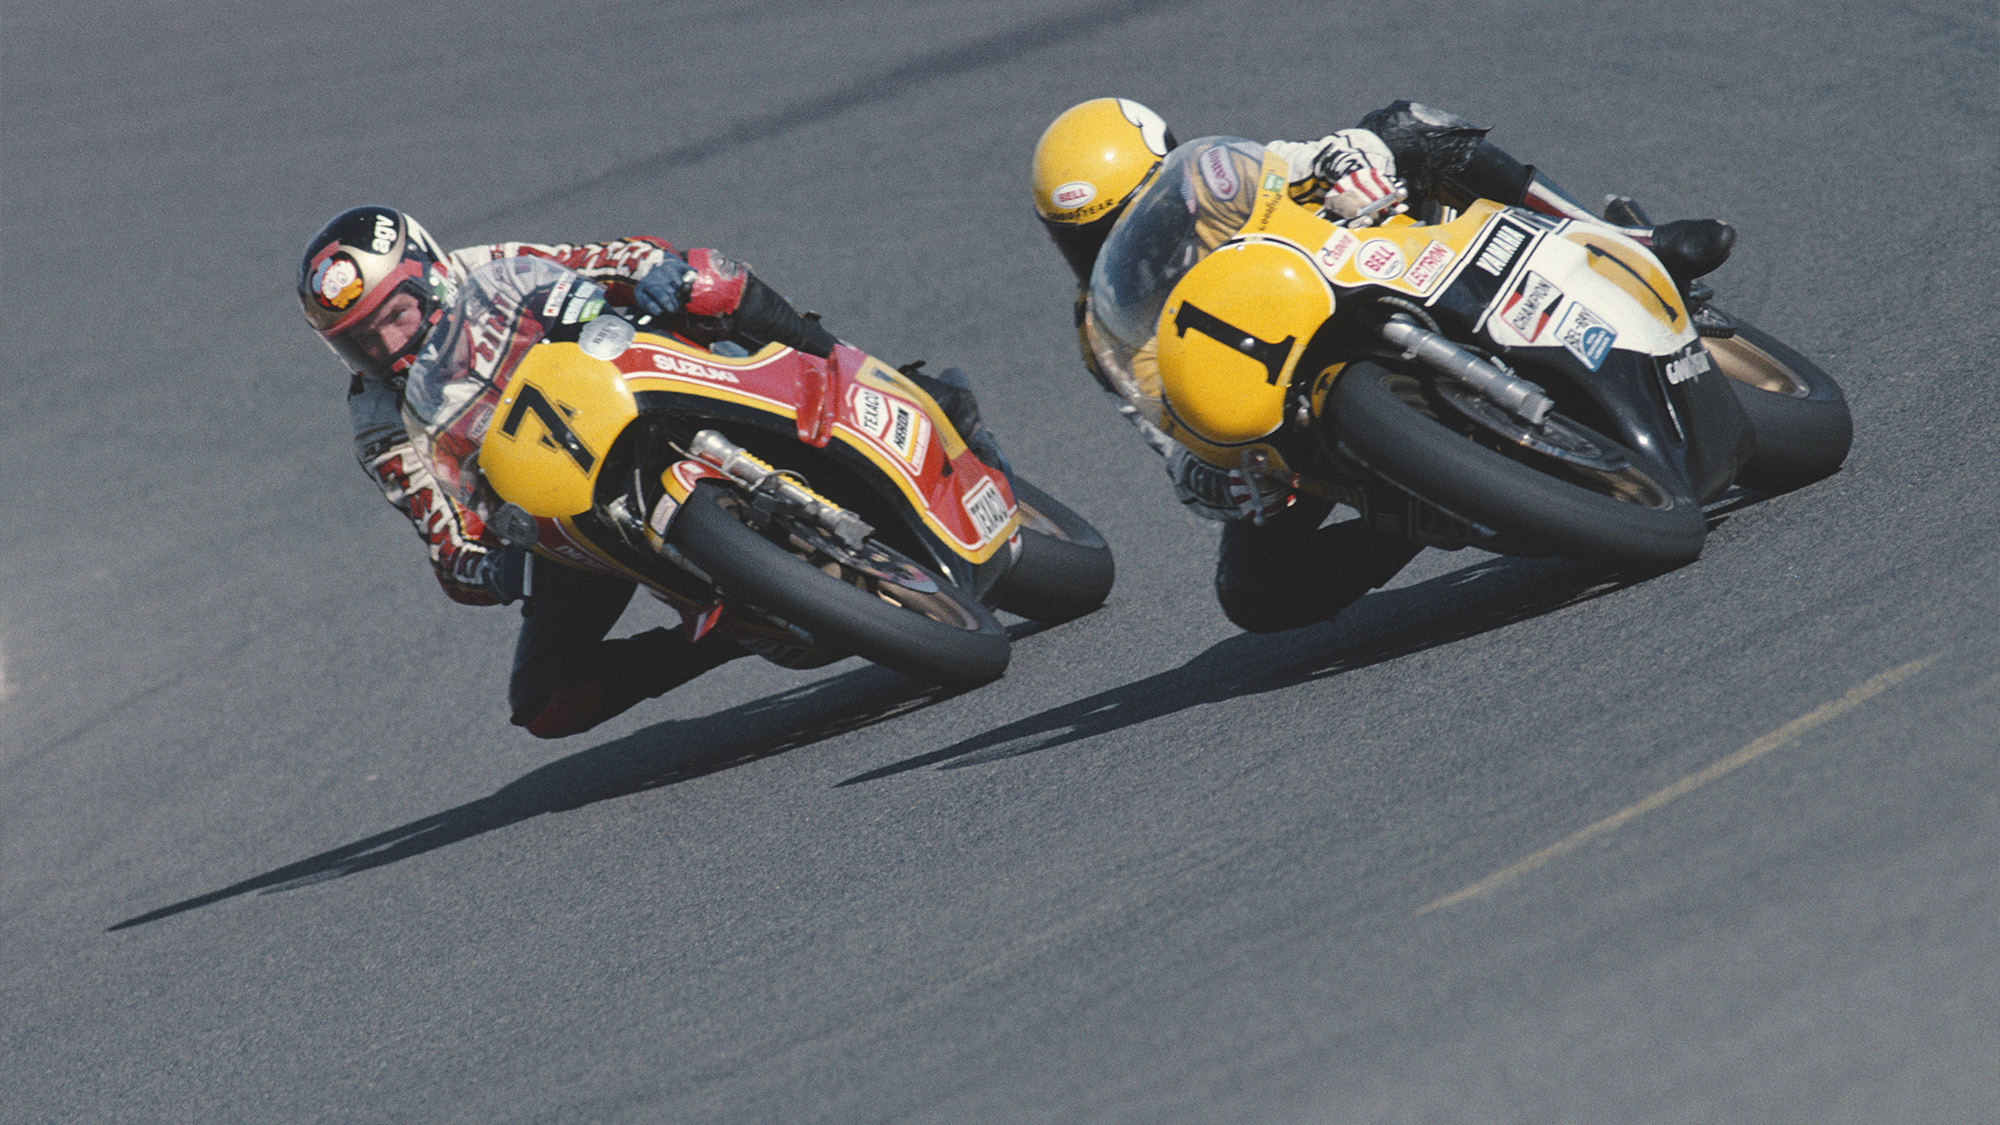 Barry Sheene battling with Kenny Roberts at the 1979 French 500cc motorcycle grand prix